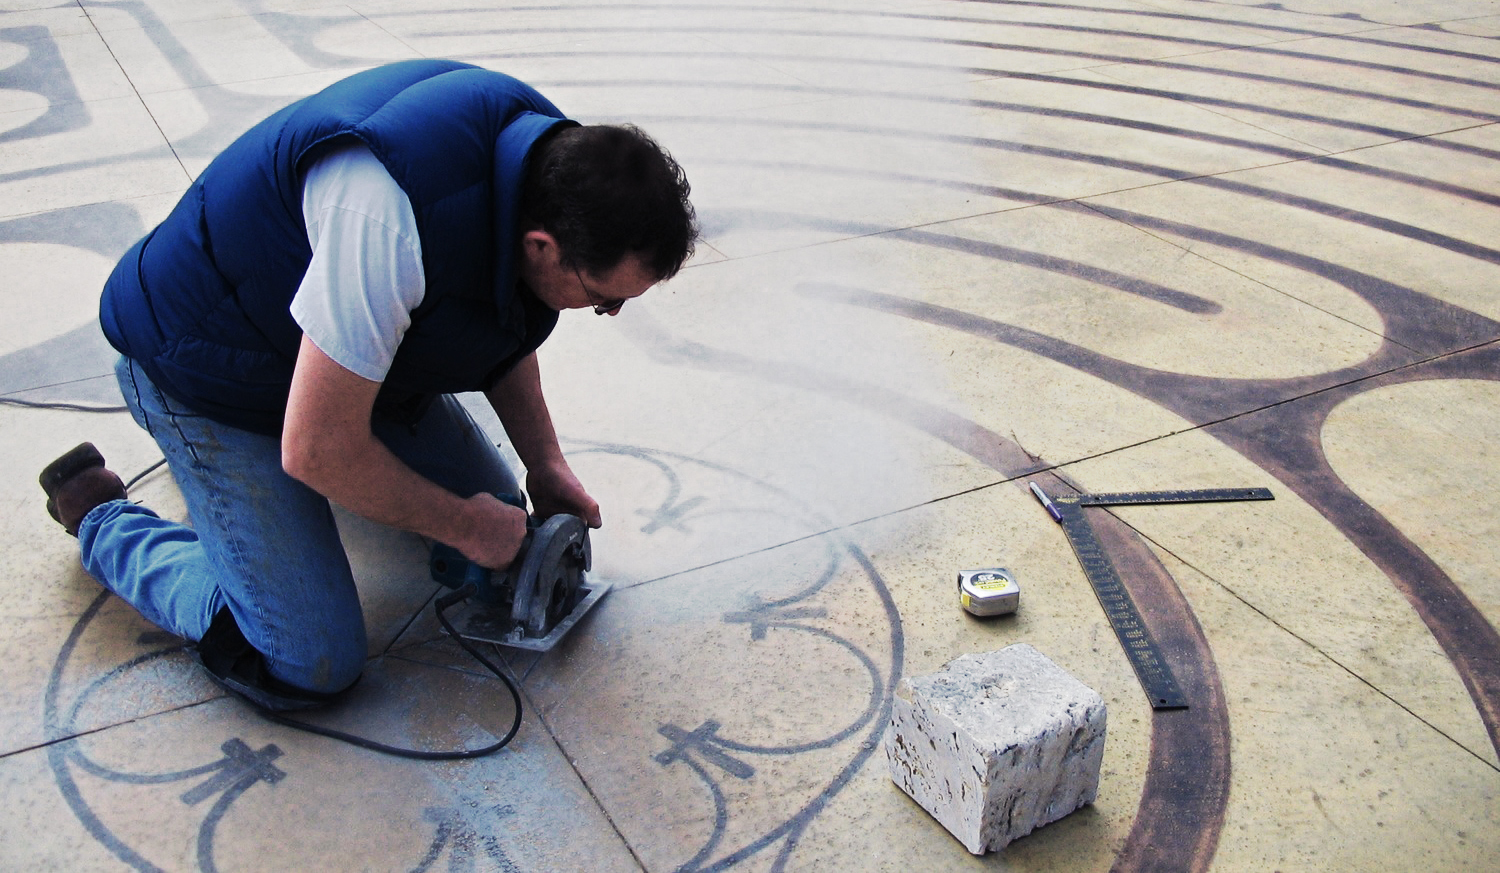 Setting the center stone at the MPBC labyrinth. The stone is from the same quarry that furnished the stone for the labyrinth in Chartres, France.